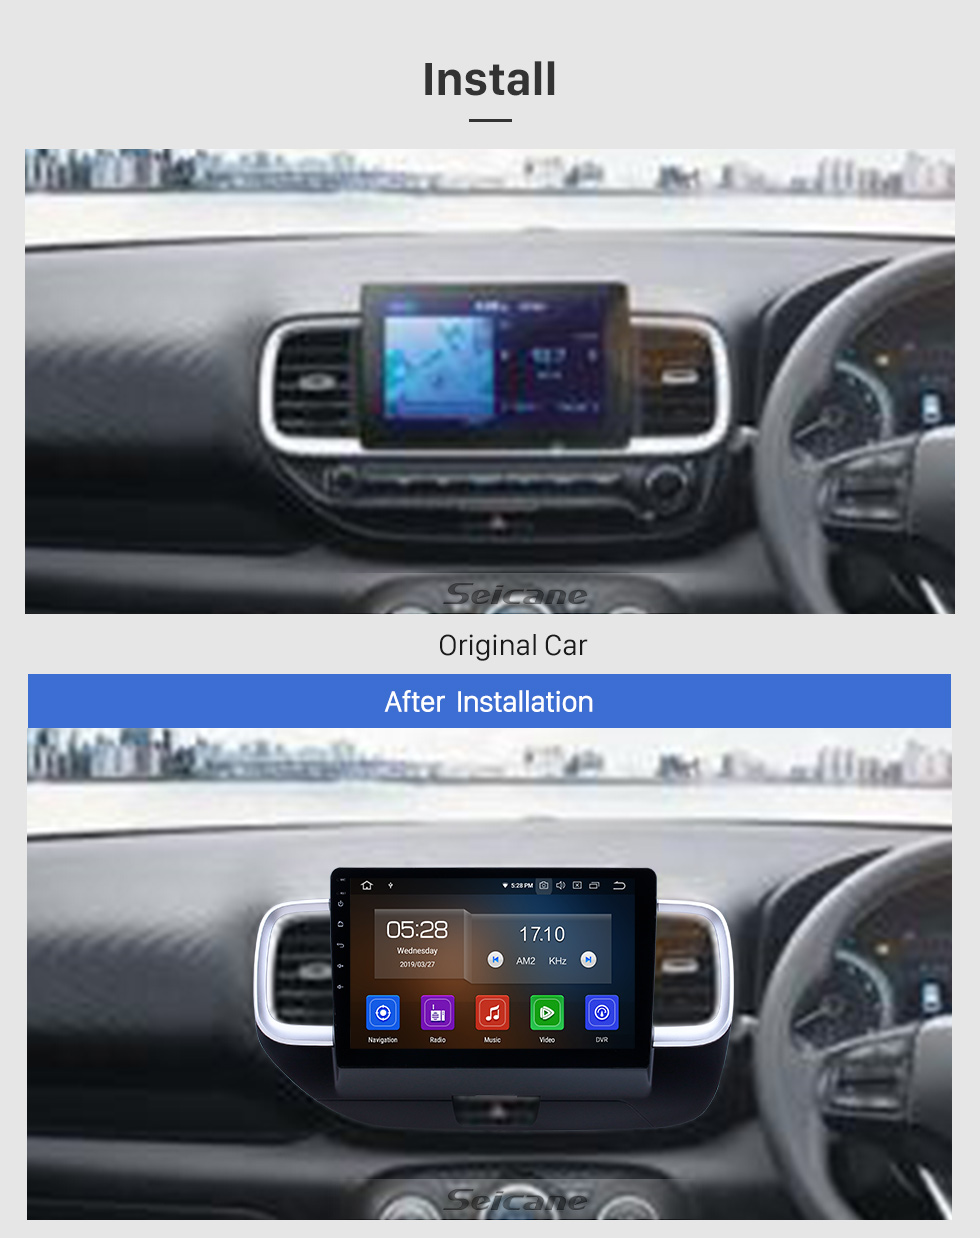 Seicane 10.1 pulgadas 2019 Hyundai Venue RHD Android 9.0 Radio de navegación GPS Bluetooth HD Pantalla táctil Carplay support Mirror Link